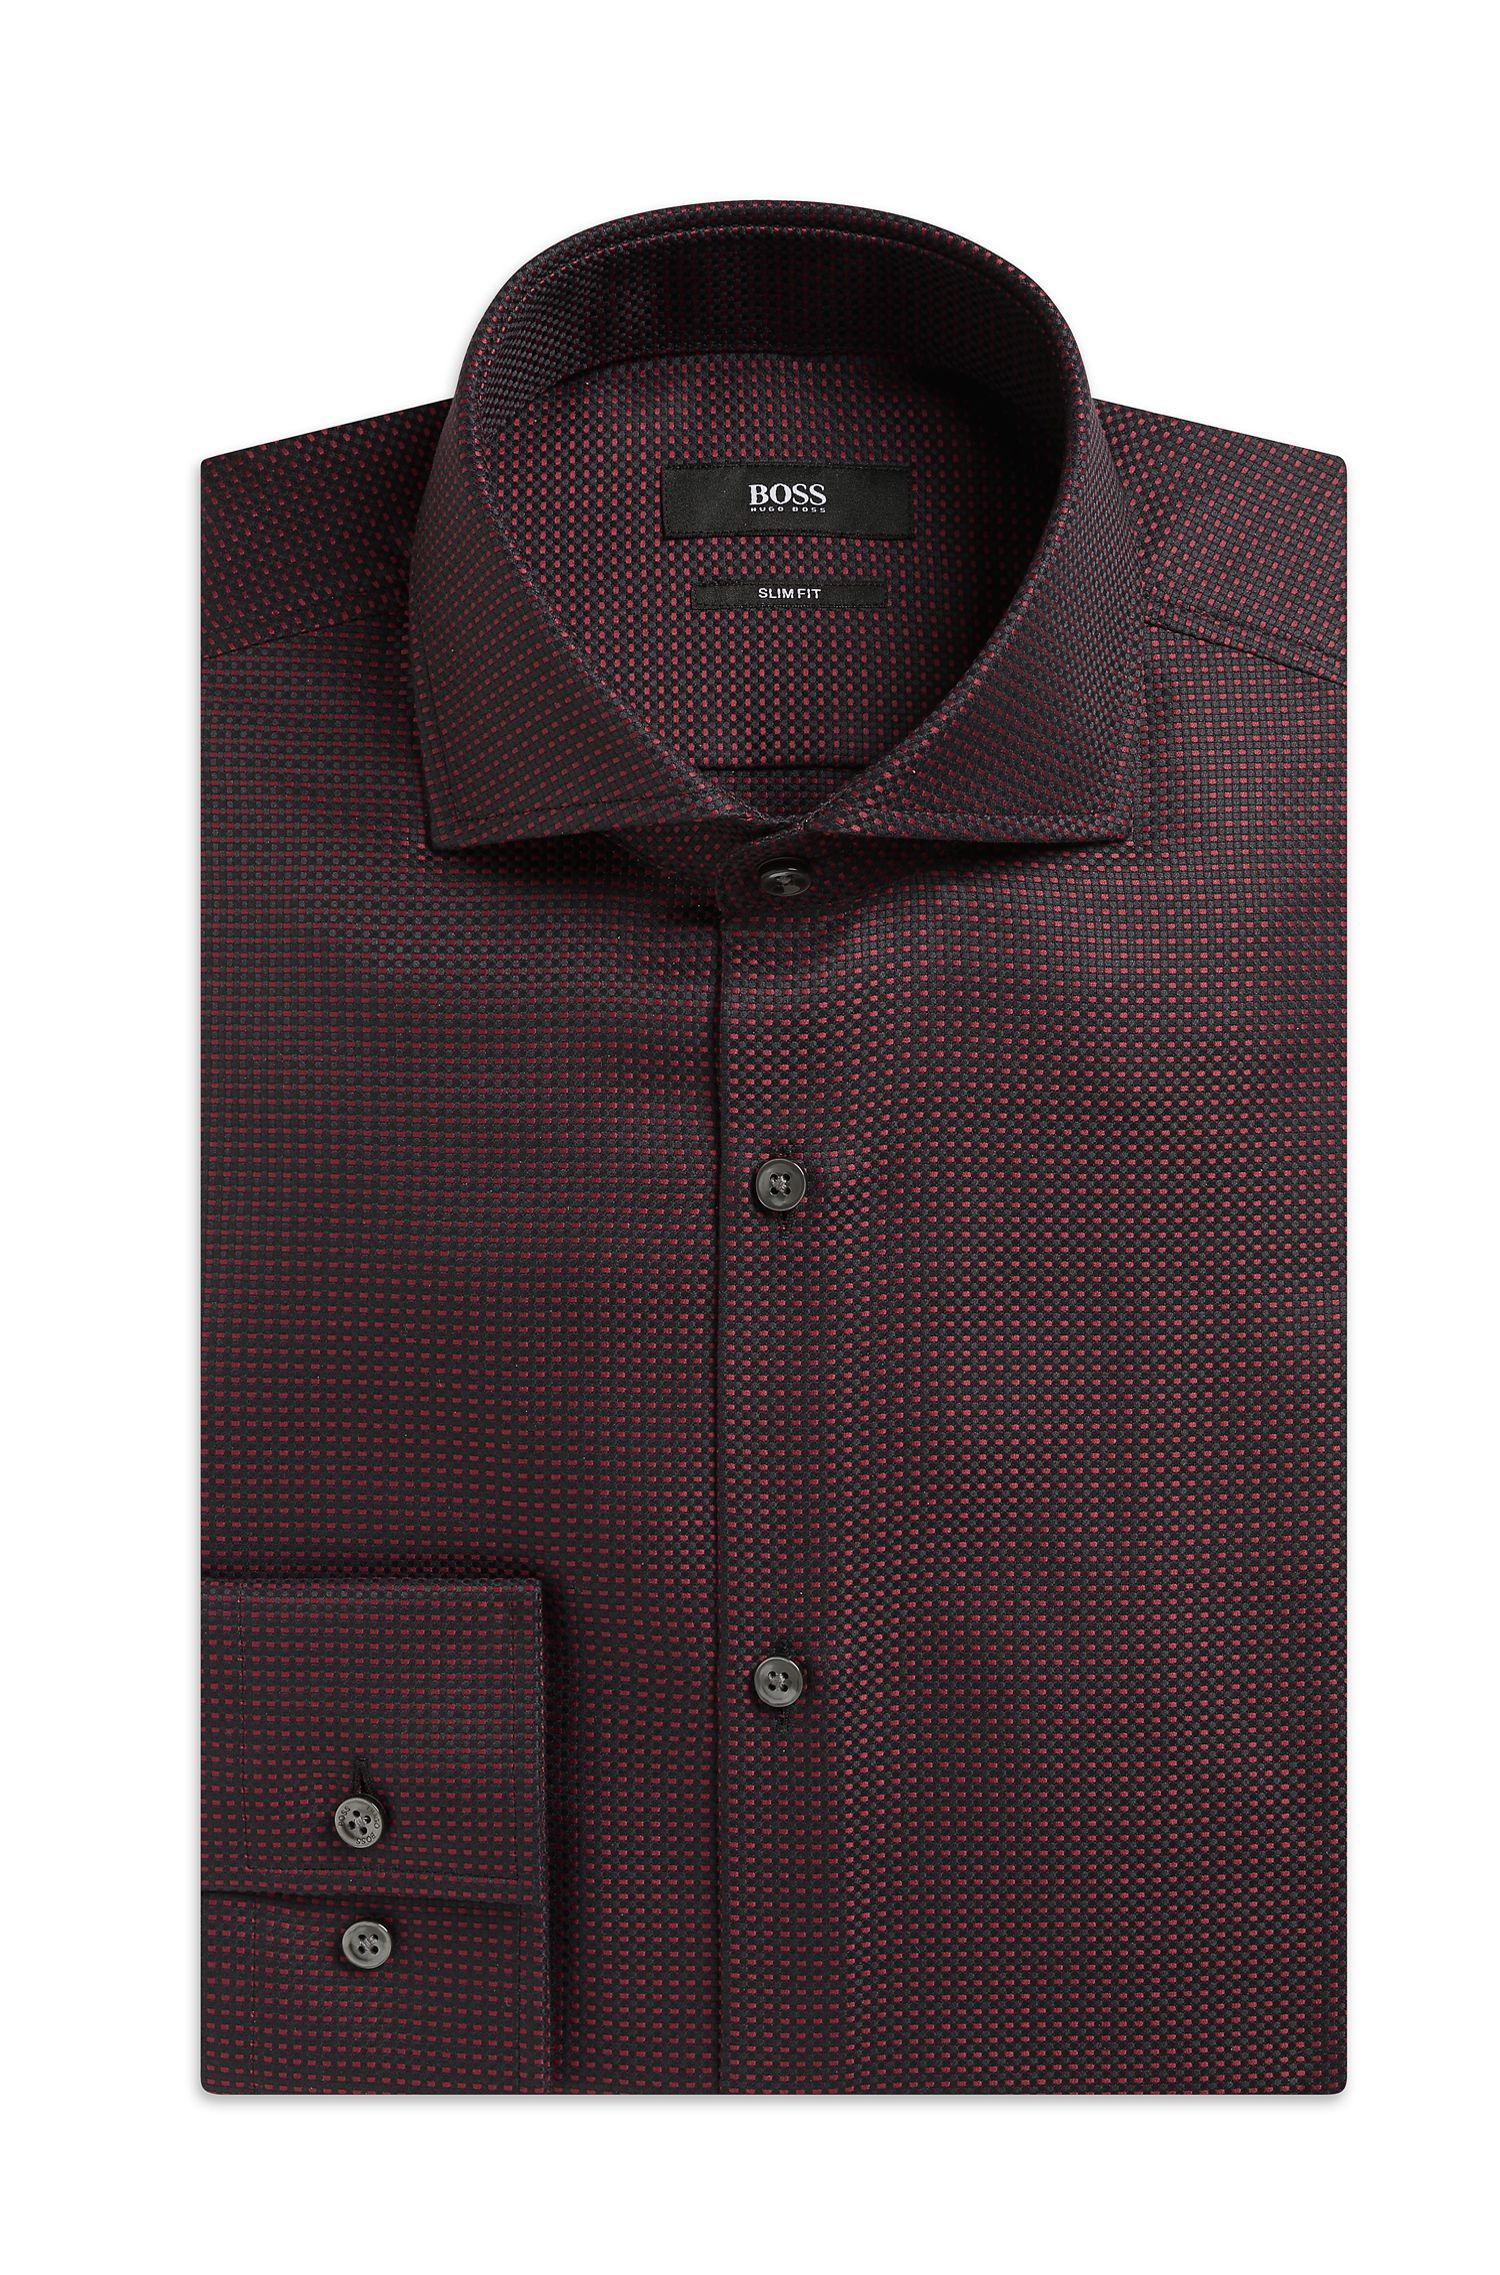 'Jason' | Slim Fit, Cotton Textured Dress Shirt